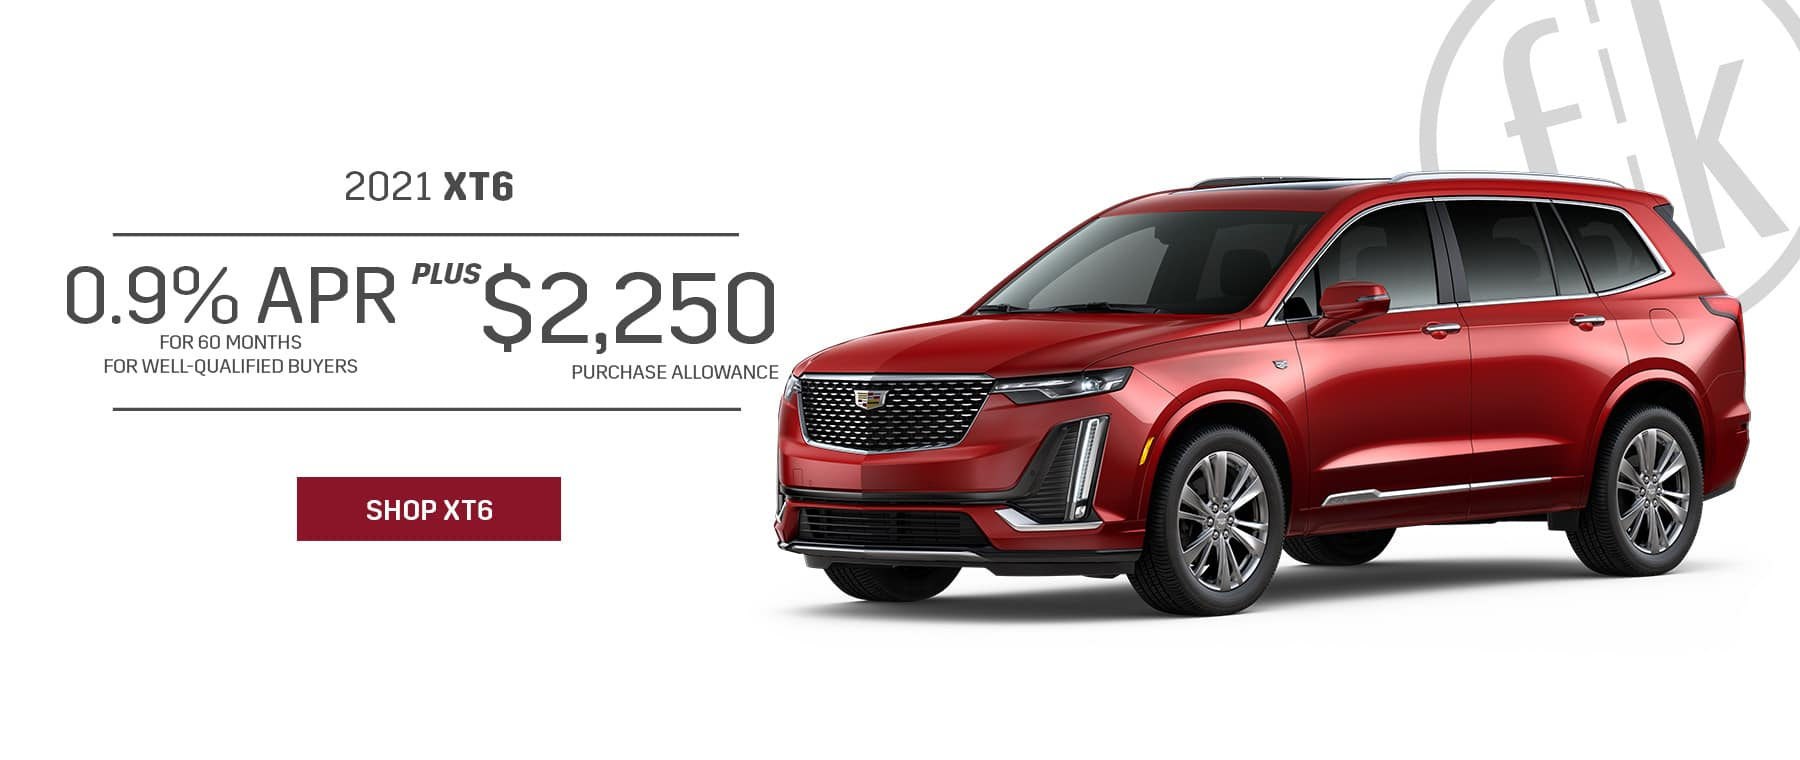 0.9% for 60 mos. PLUS $2,250 Purchase Allowance 2021 XT6